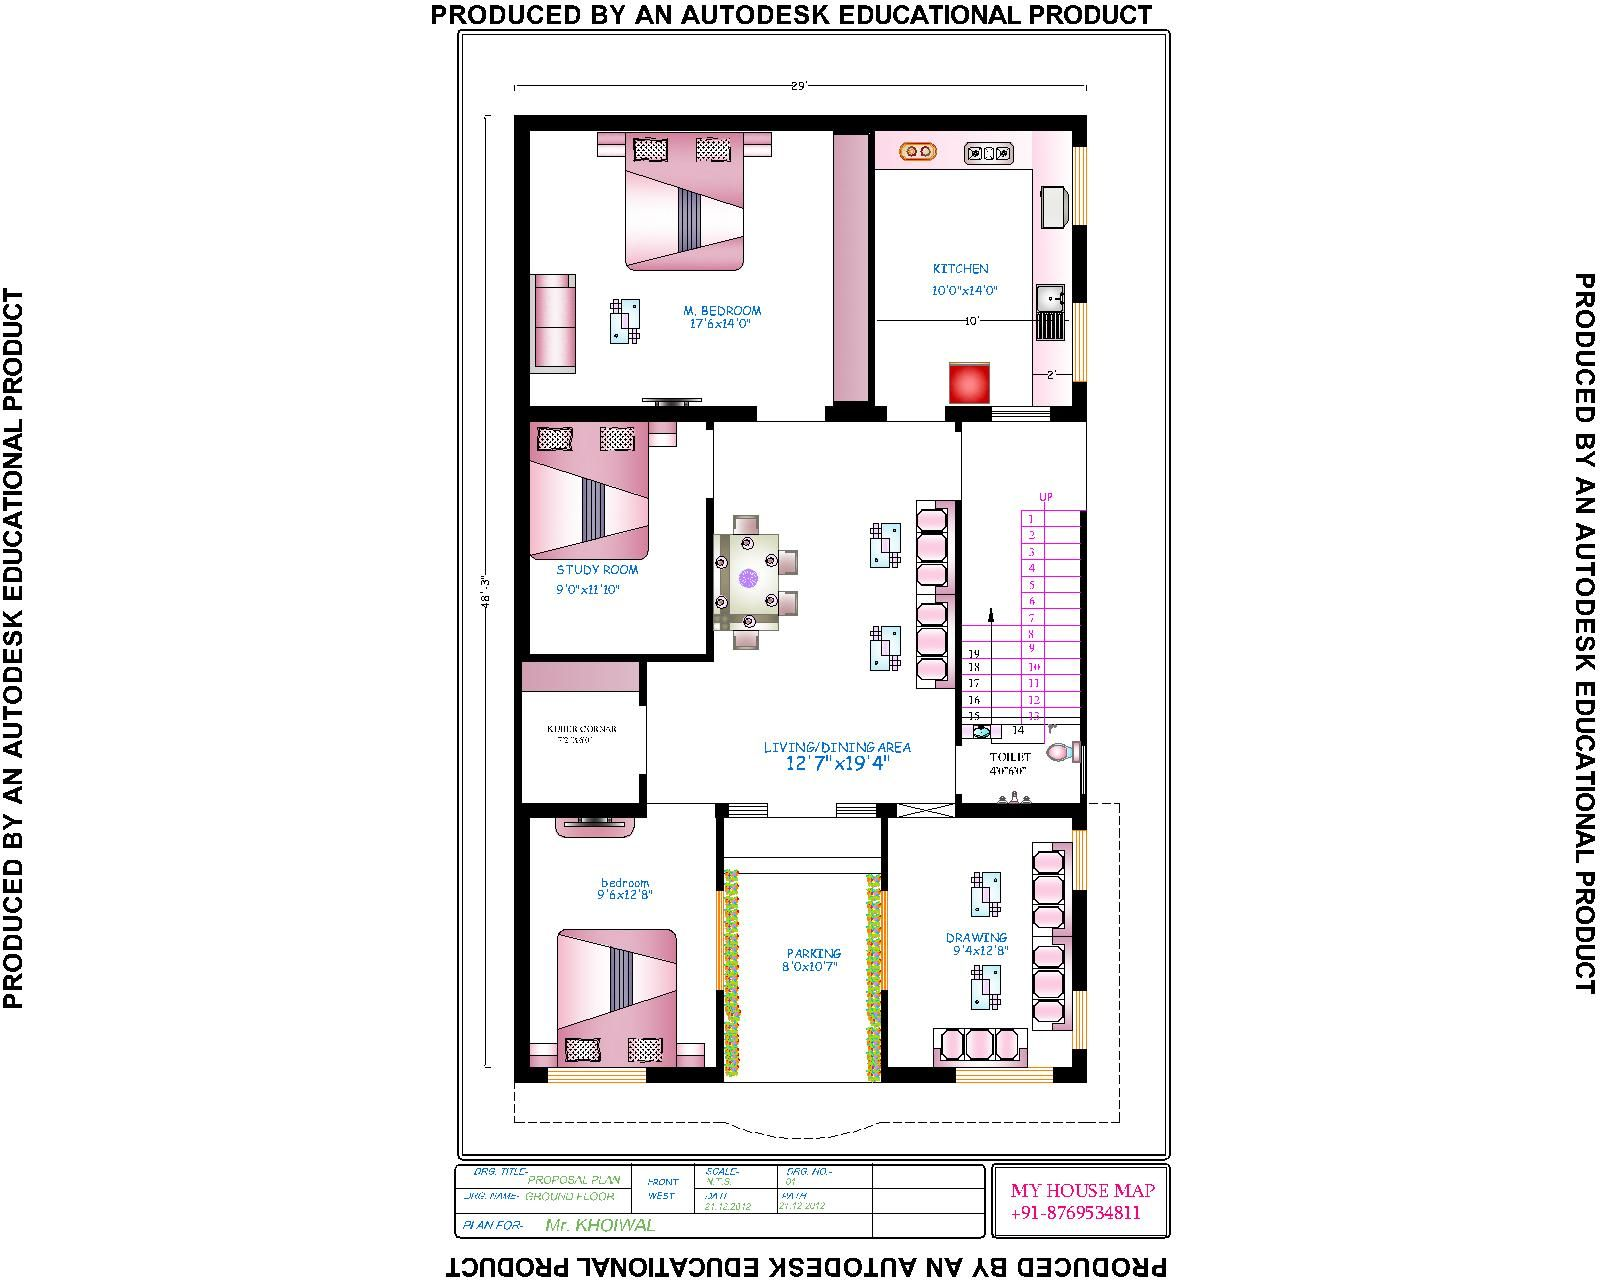 house-map-india.jpg (1600×1280) | House map, Floor plans ...